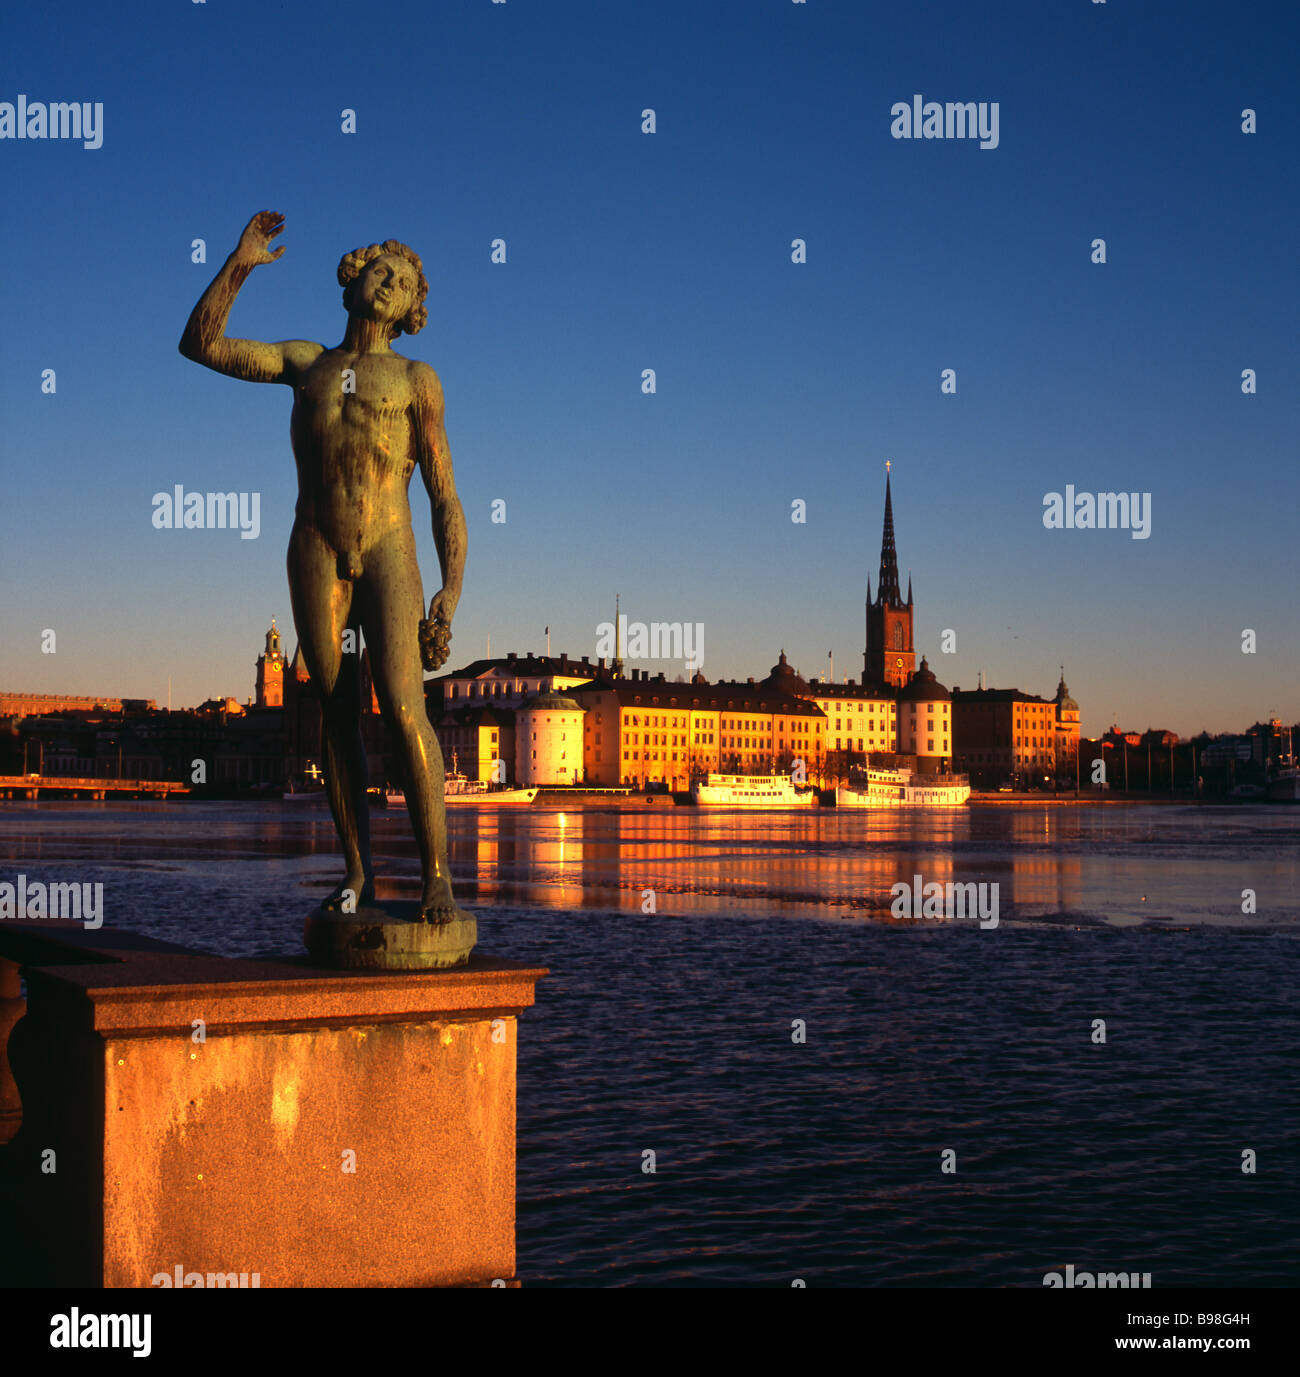 Statue on waterfront outside Stadhuset, Kingsholmen, Stockholm, with Riddarsholmen behind, Stockholm, Sweden. - Stock Image